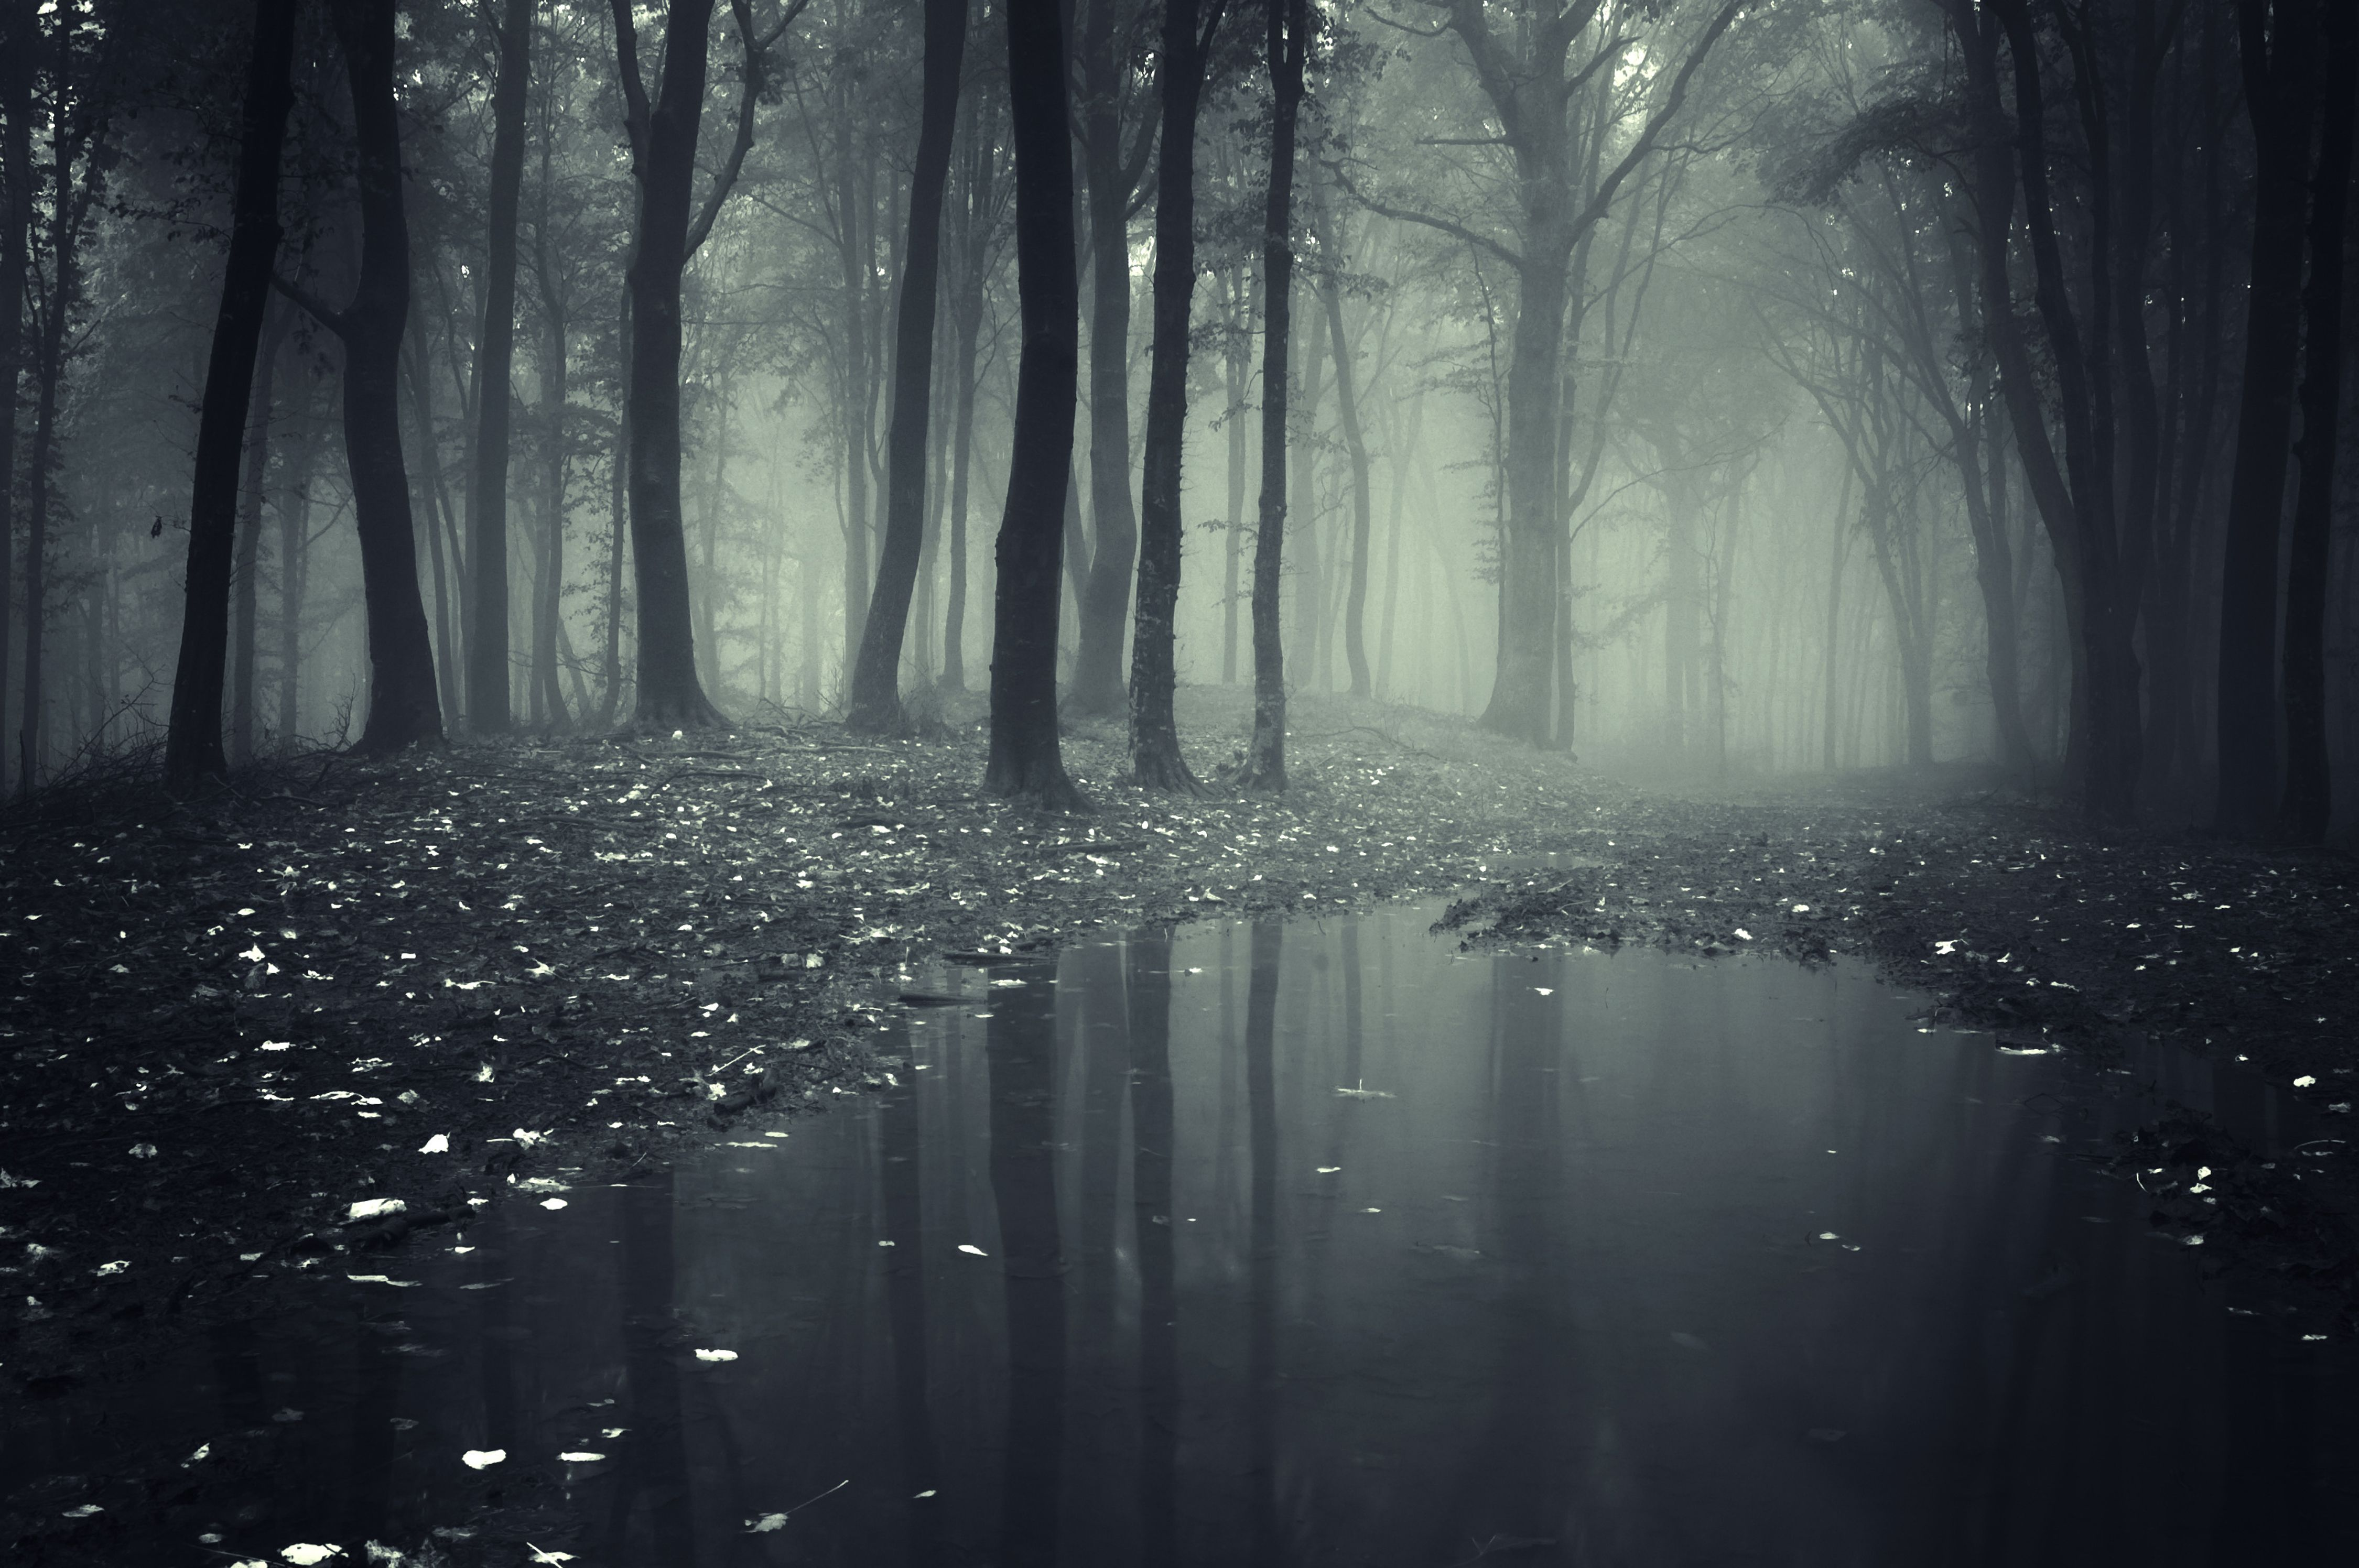 Creepy Landscape Wallpaper Phone Forest Wallpaper Landscape Wallpaper Dark Wallpaper